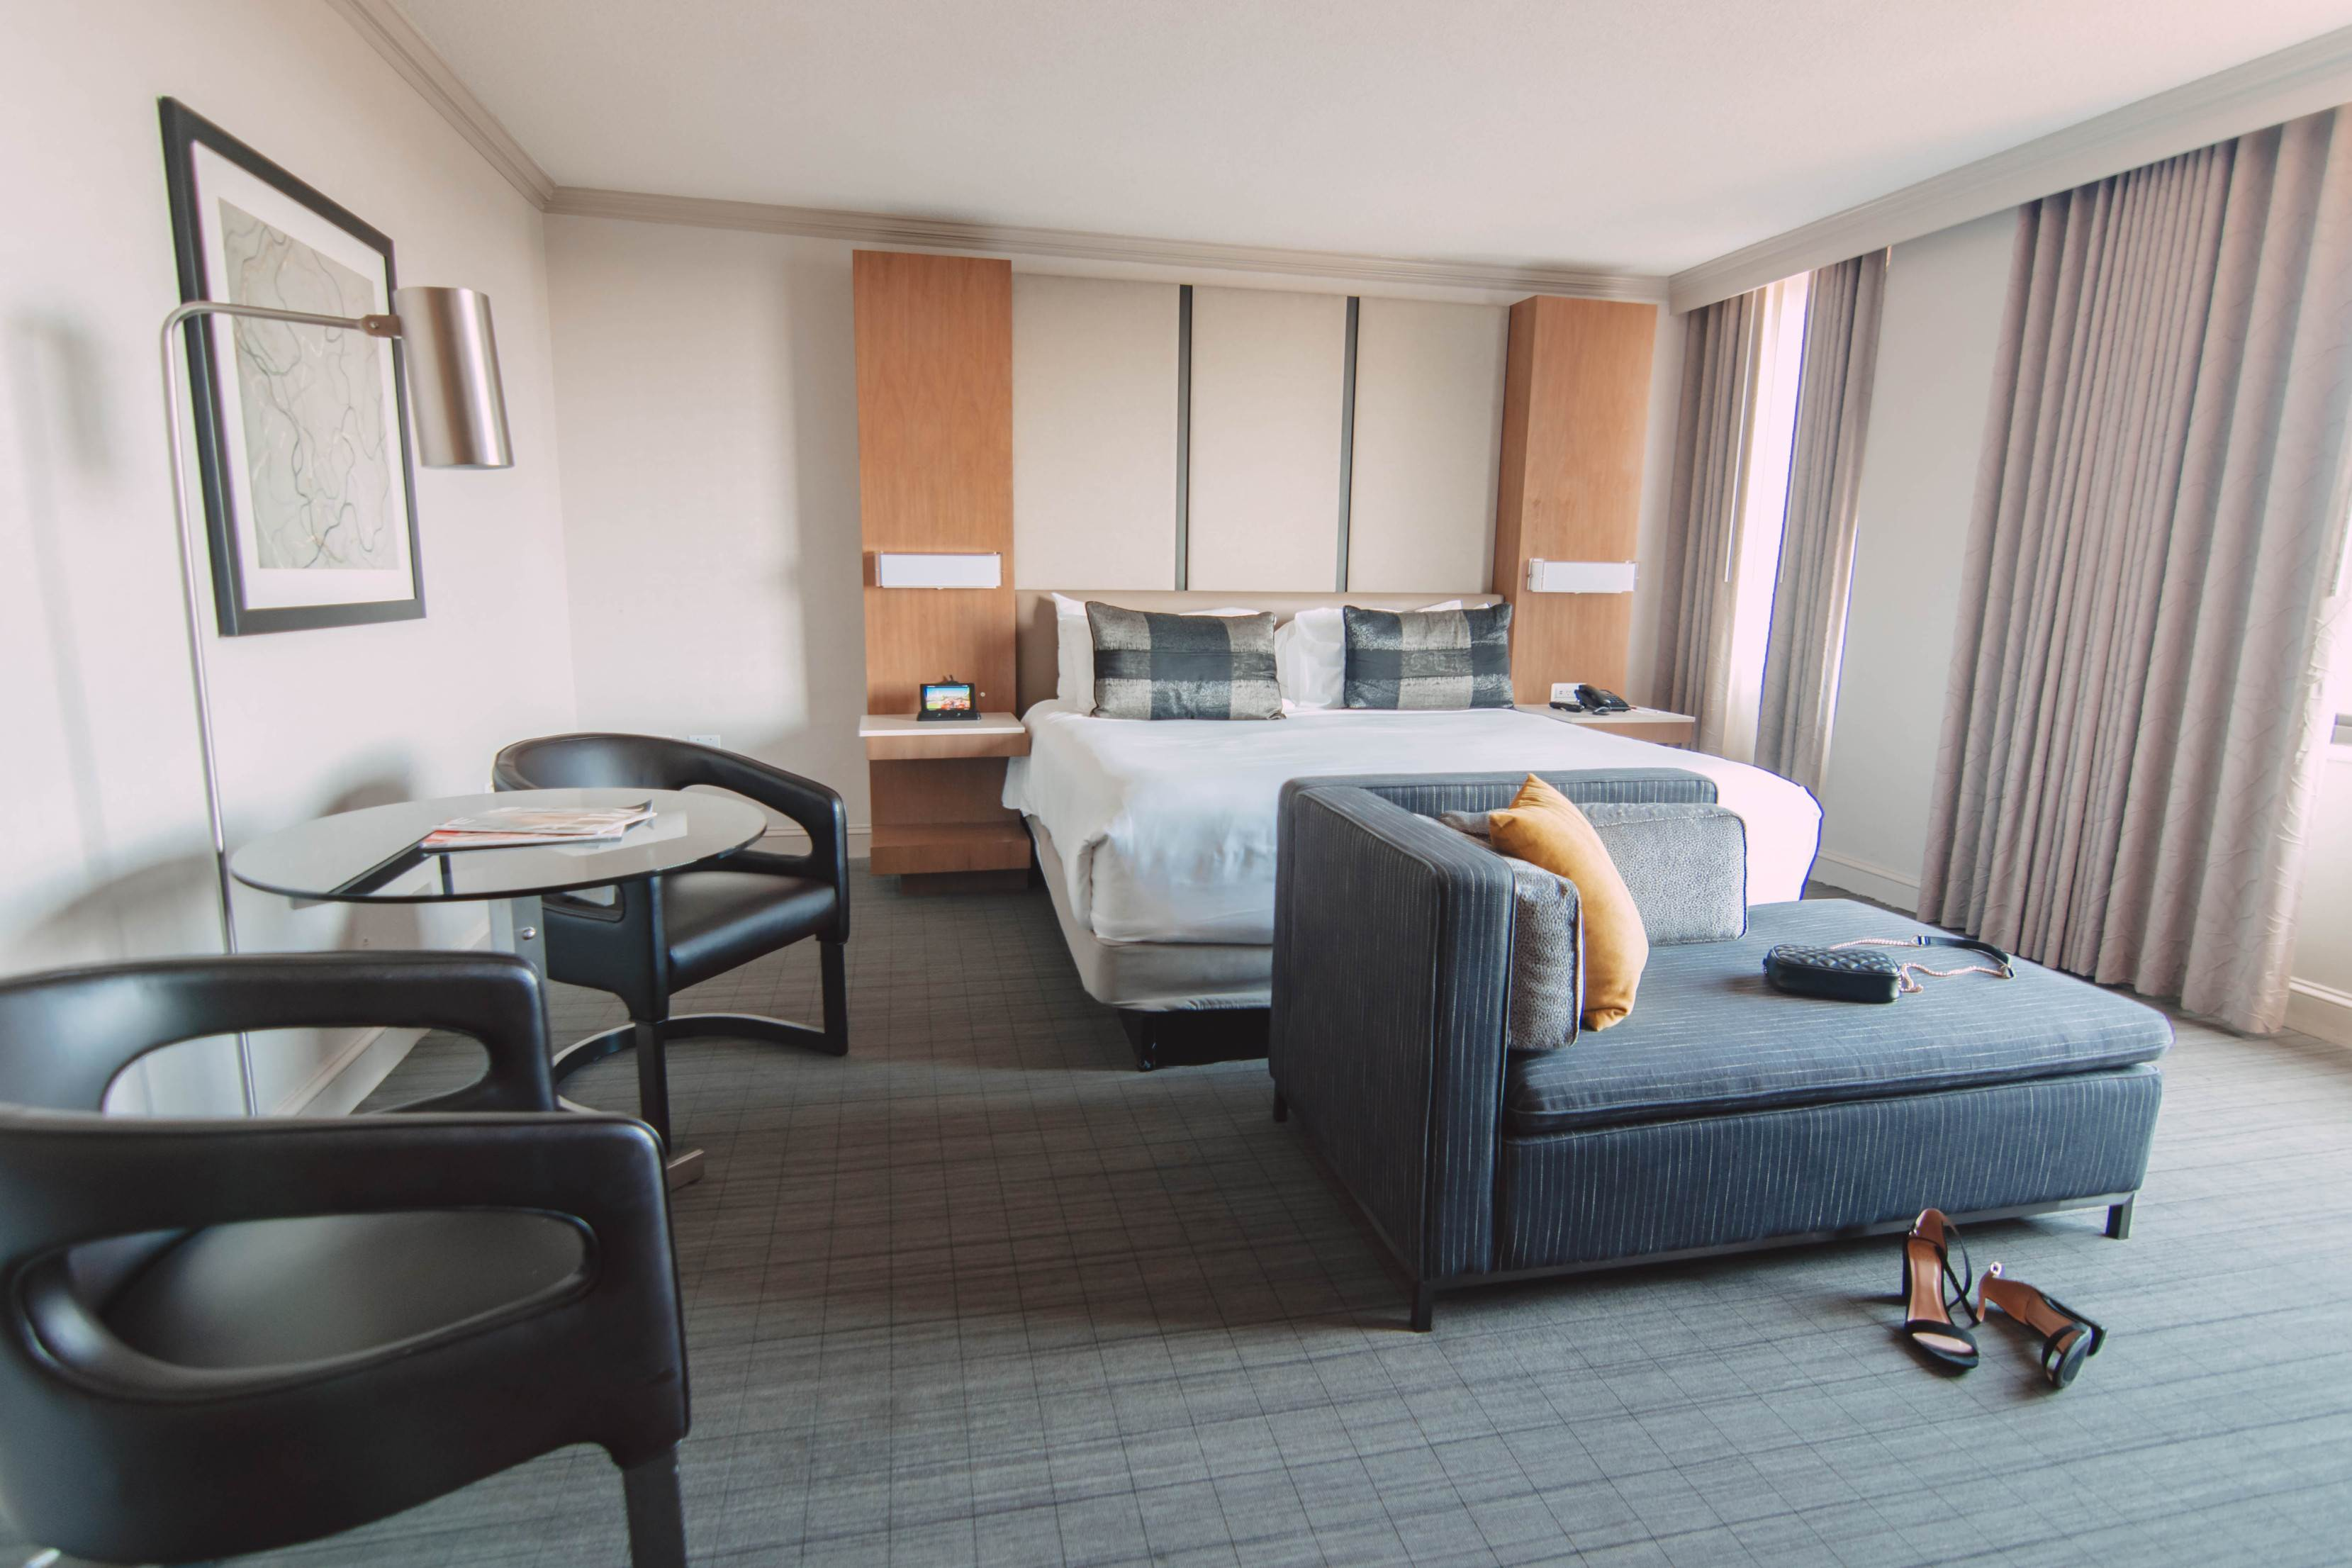 Why You Should Book a Stay At Washington Court Hotel | She Saw Style